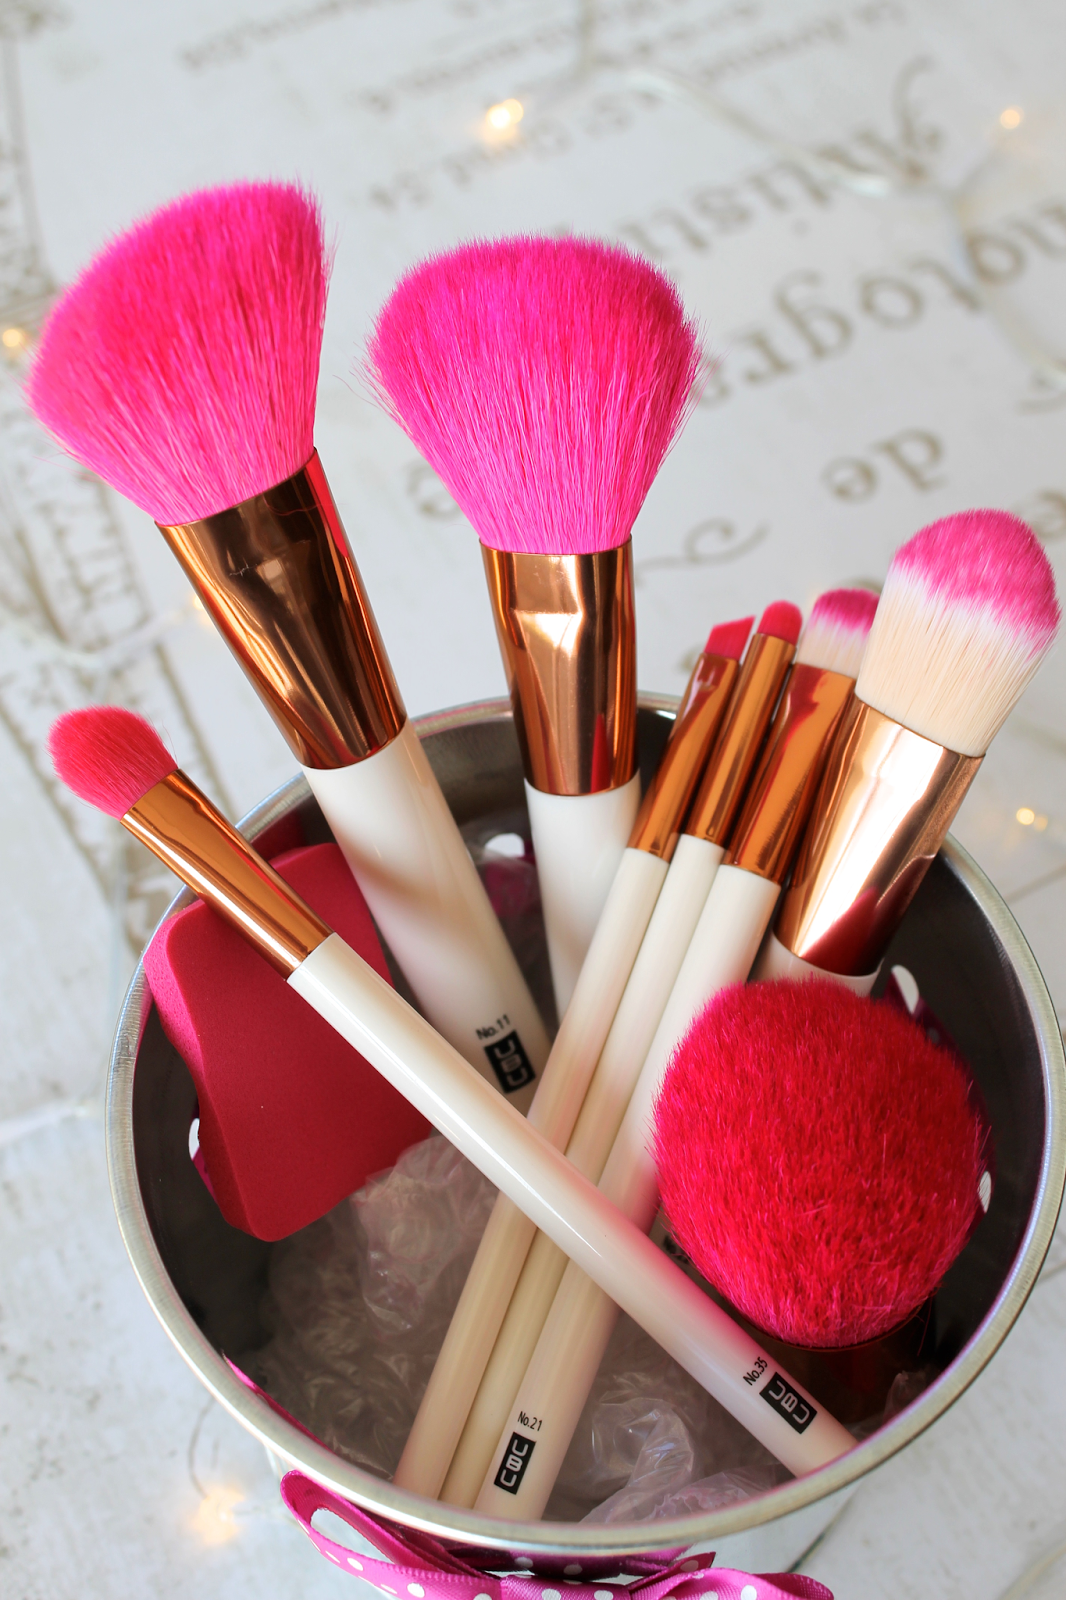 Pretty Makeup Brushes on a Budget Pretty makeup, Makeup